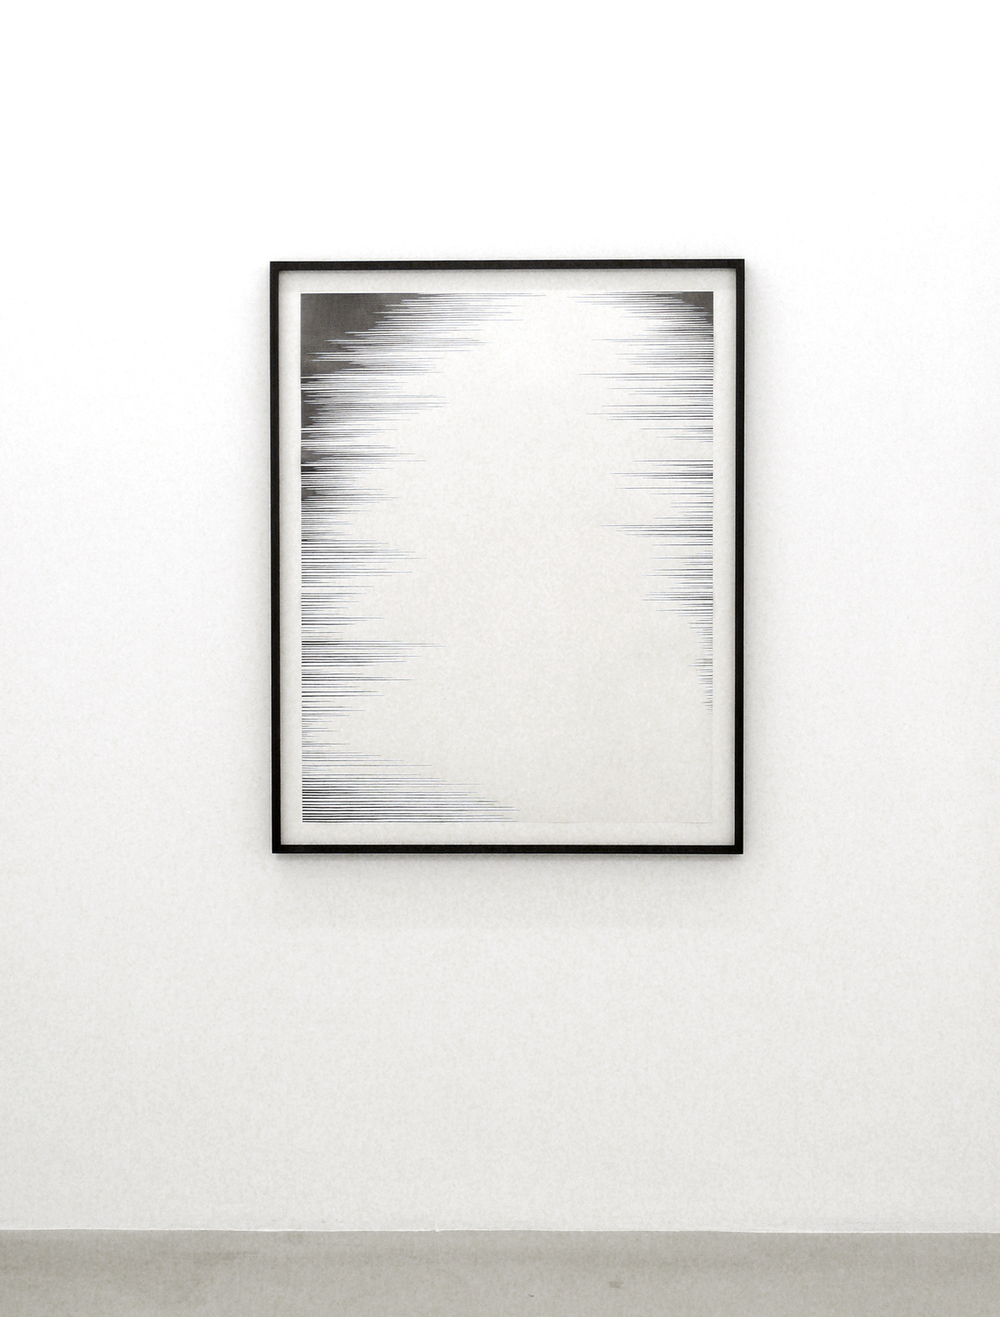 dust ll, 2011 pencil on paper, 110cm x 86cm